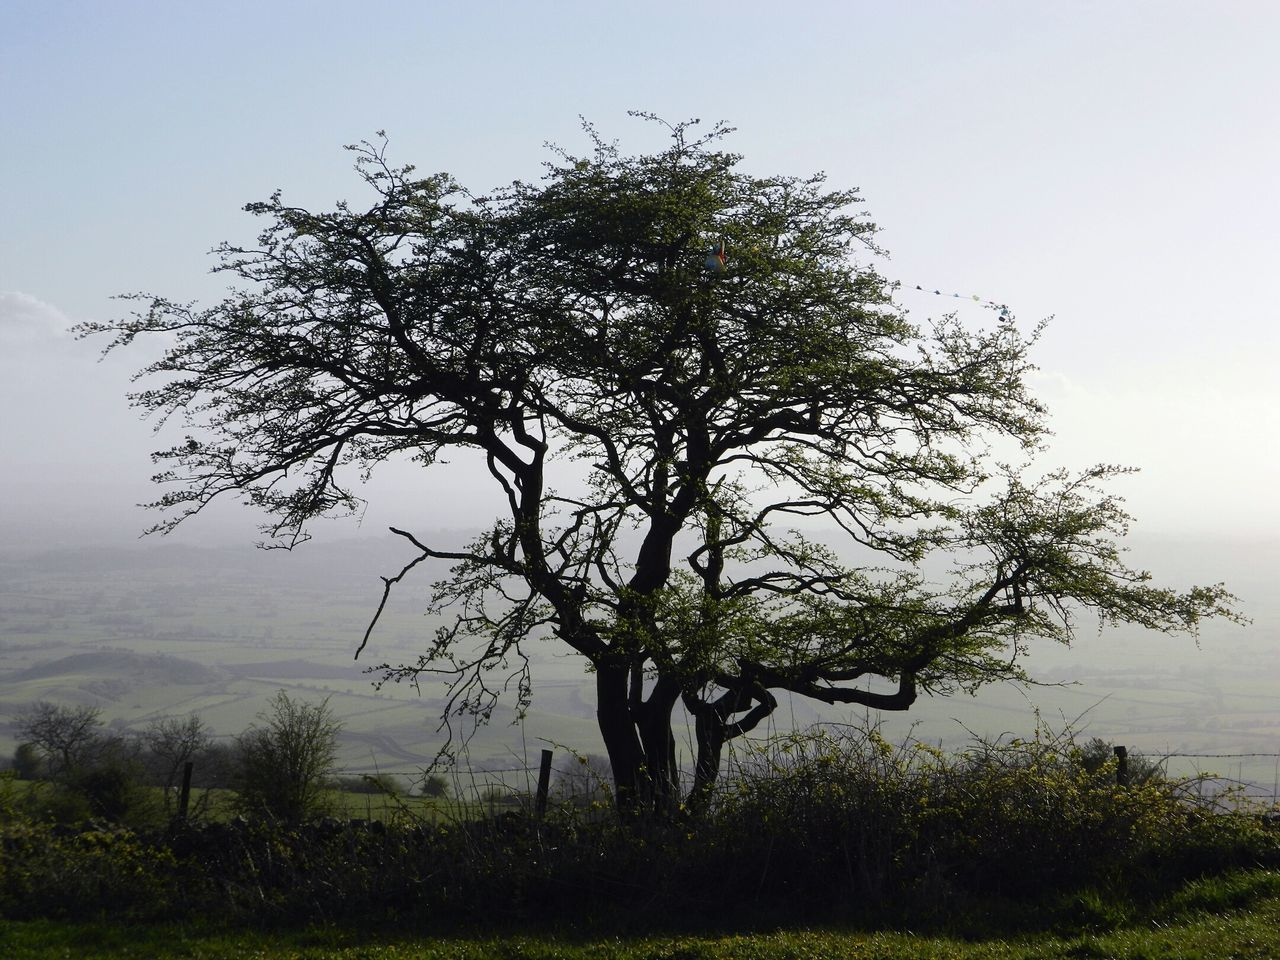 Quirky tree. Tree Nature Outdoors No People Tranquility Landscape Sky Day Beauty In Nature Fog Grass Growth Plant Priddy Somerset Rural Highup Beautiful Beautiful View Beaytiful Landscape Trees And Sky Tree Art Tree Branches Trees And Nature Treelovers